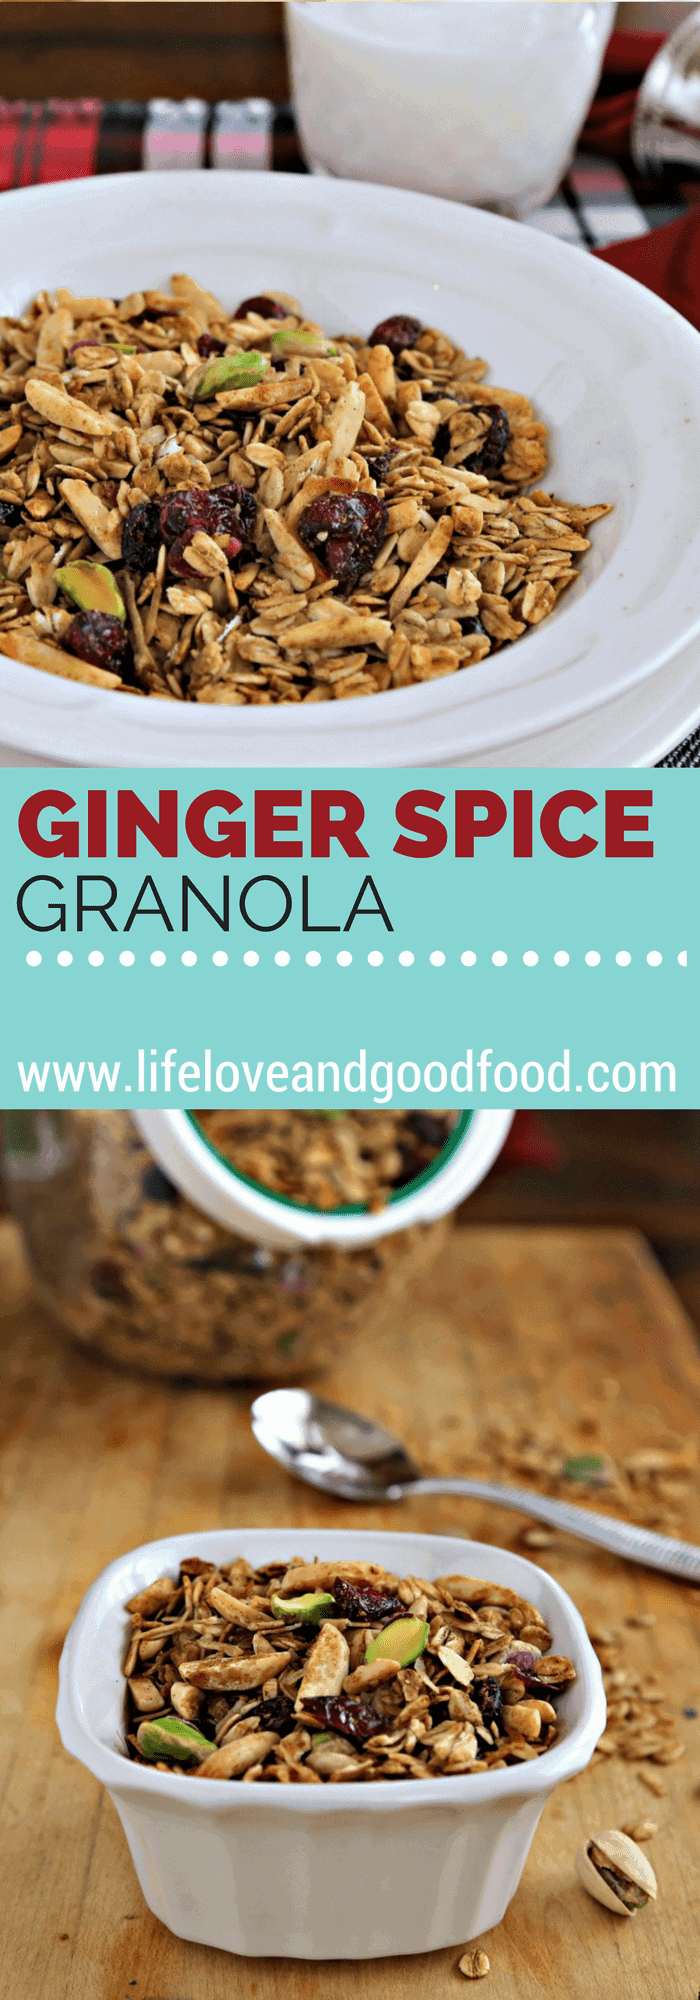 Sweetened with maple syrup and molasses, Ginger Spice Granola gets a nice crunch from toasted coconut and almonds and bakes in just 30 minutes!